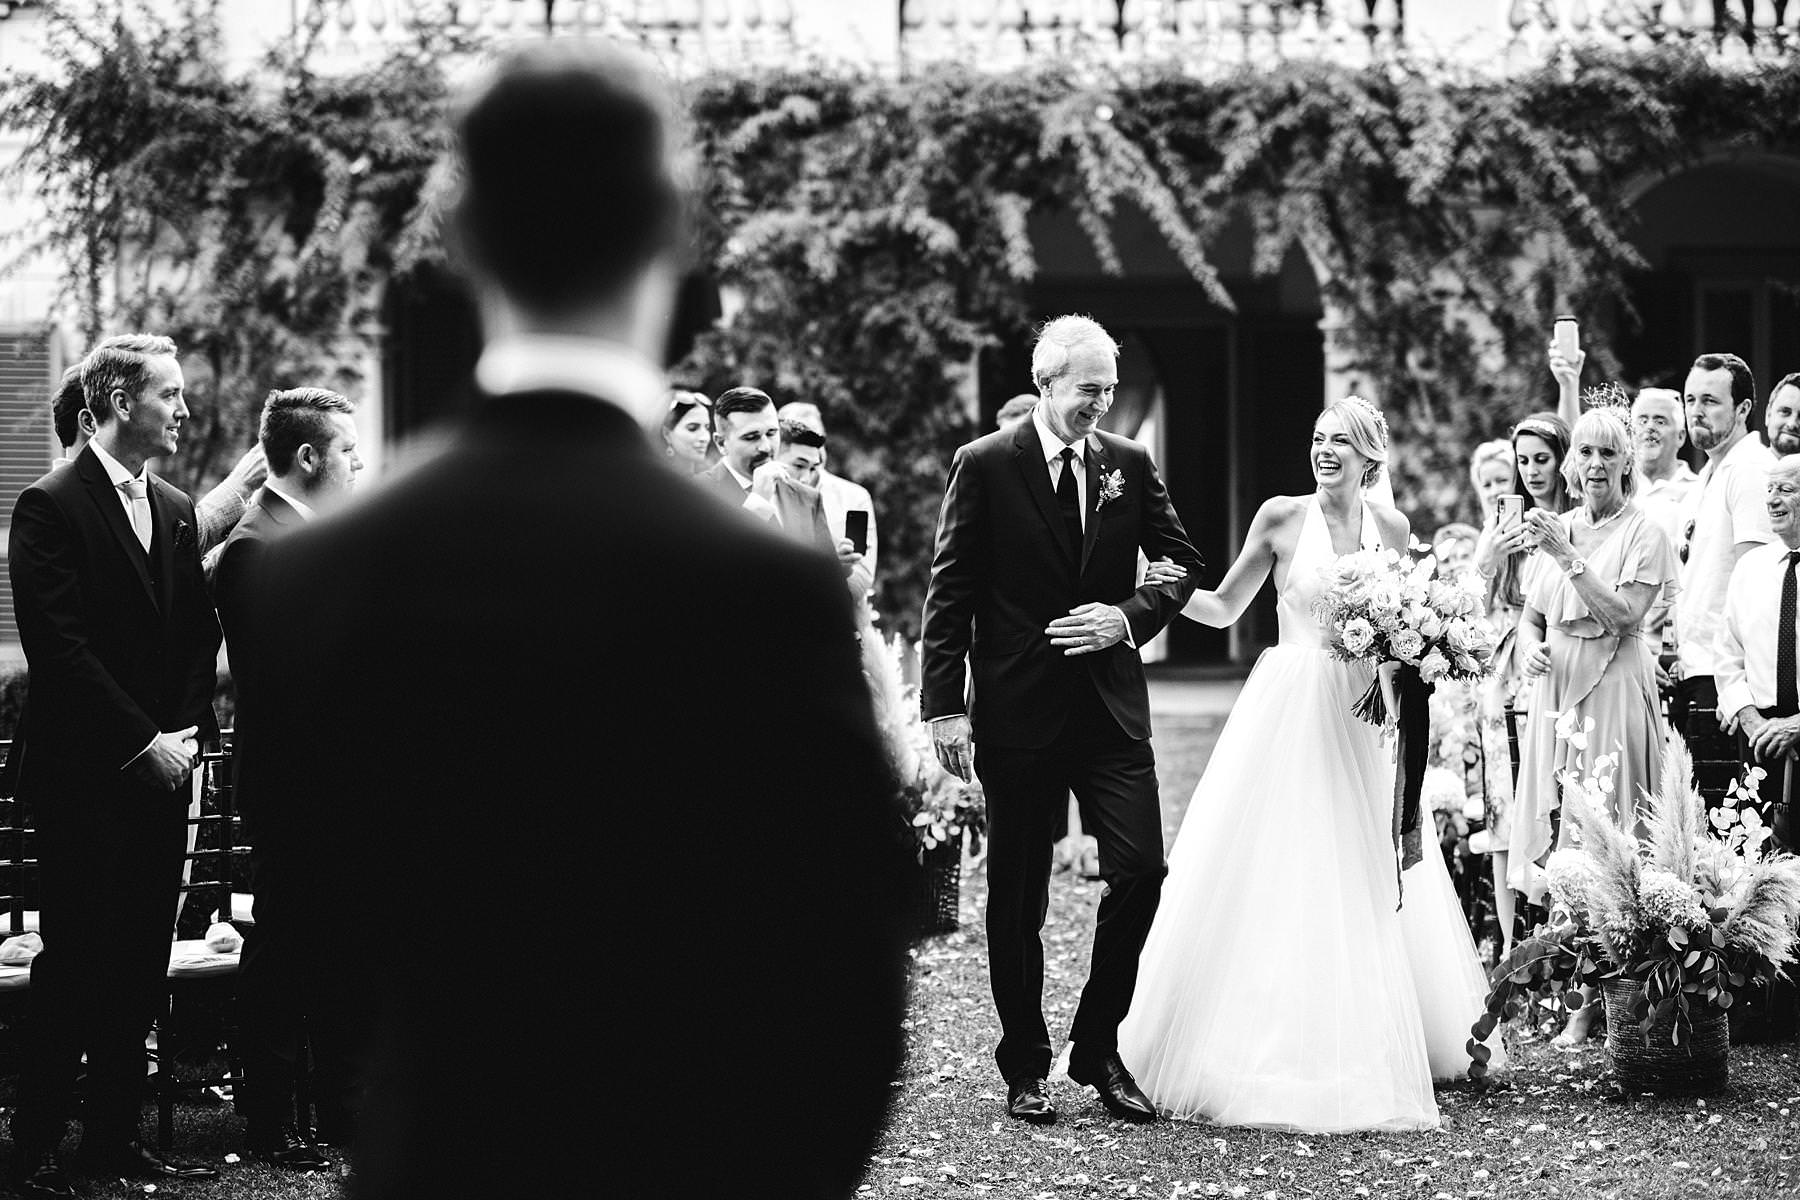 Lovely bride Christina in her Liancarlo wedding dress walks down the aisle with dad in the elegant garden and ceremony decor at Villa La Vedetta, Florence. Luxury destination wedding in Florence